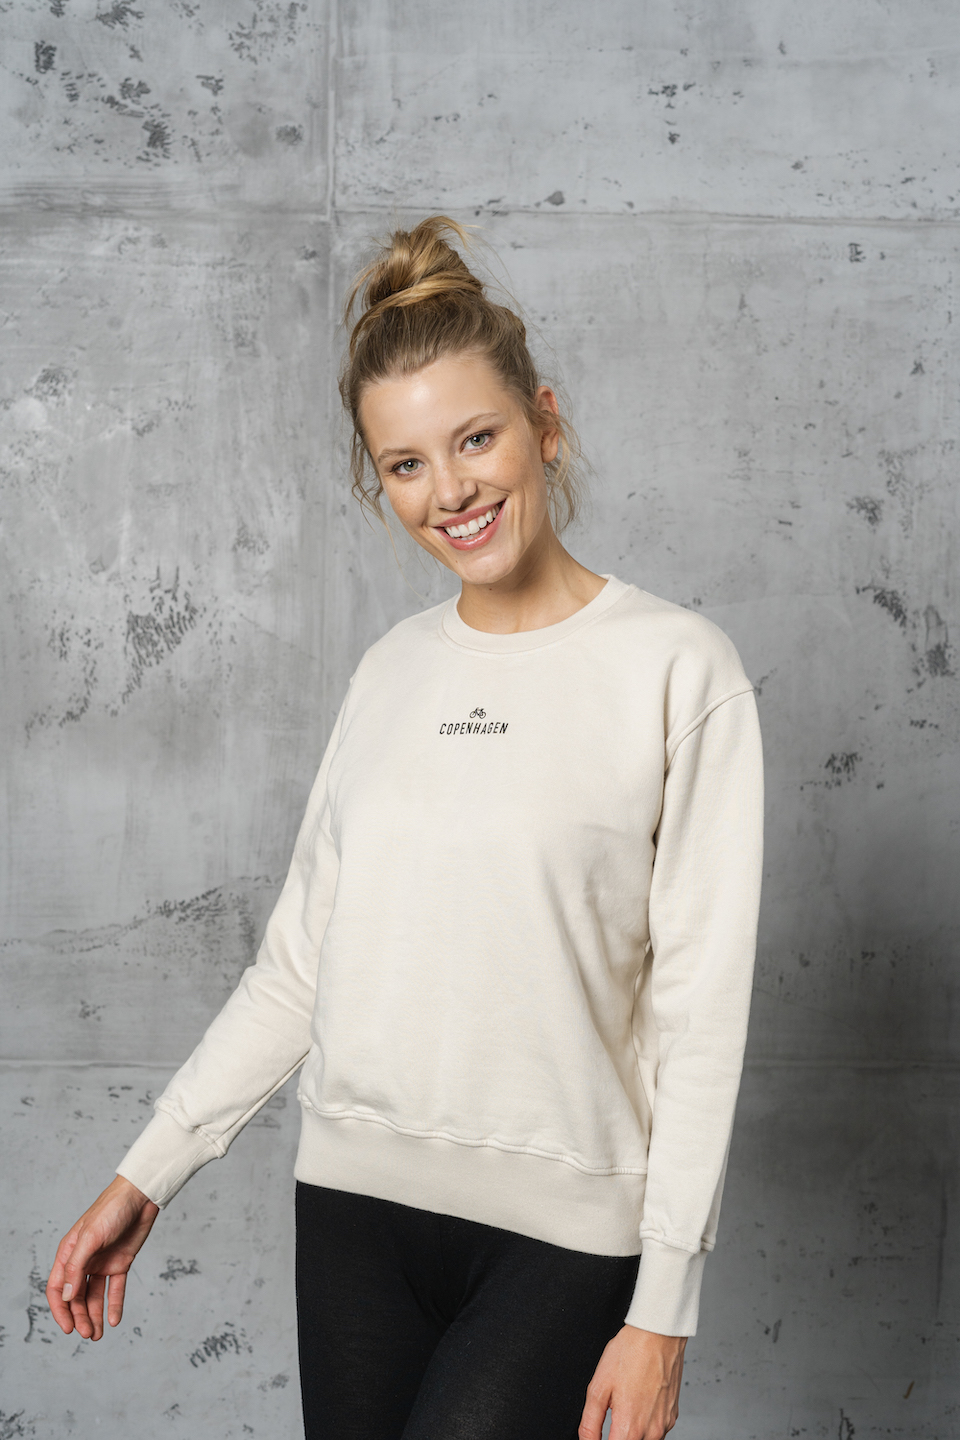 CPH Sweat 1 org. cotton ivory white - alternative 2